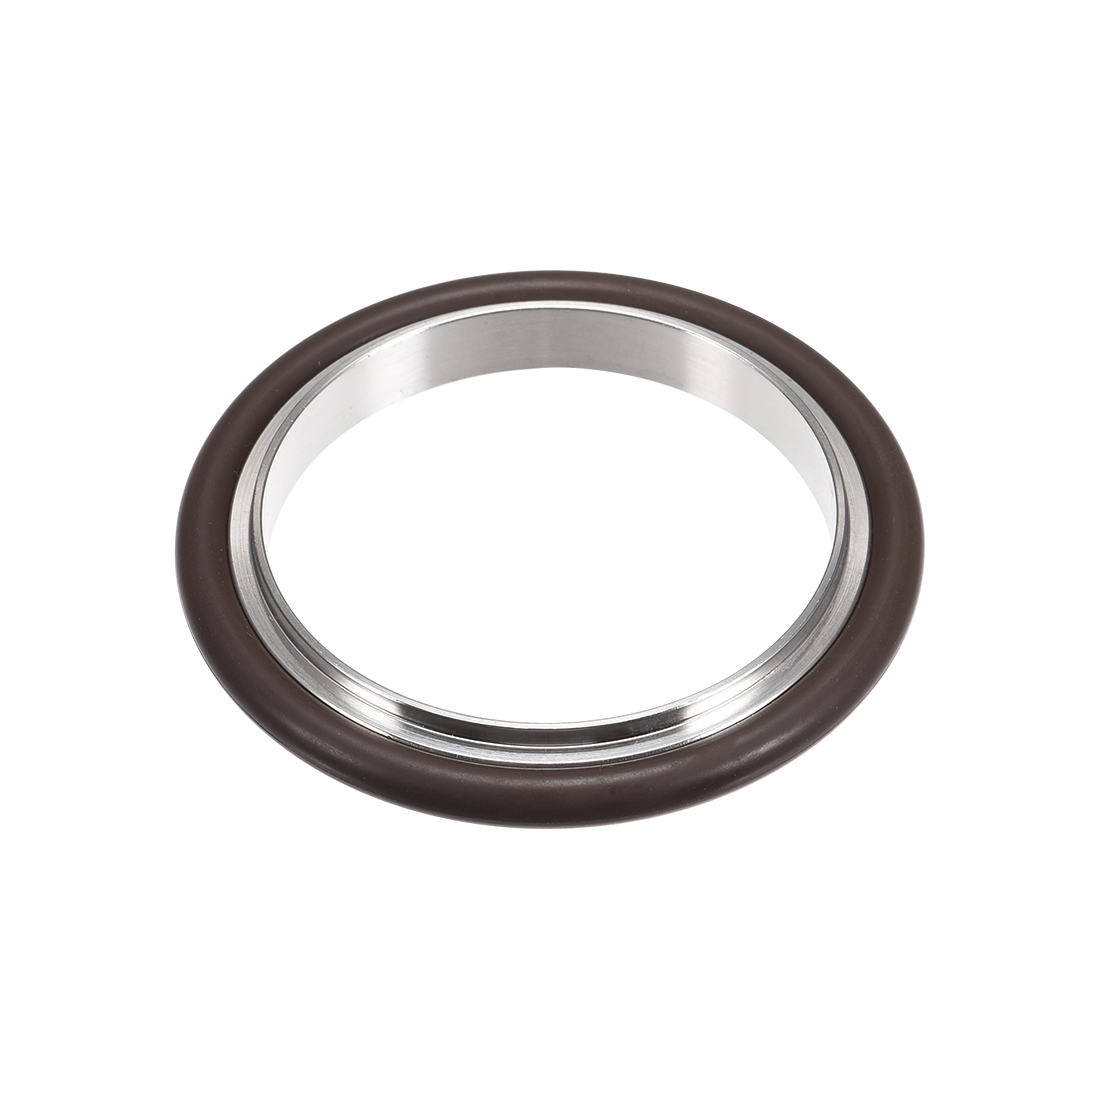 Centering Ring KF-50 Vacuum Fittings ISO-KF Flange 66mm x 50mm Fluororubber